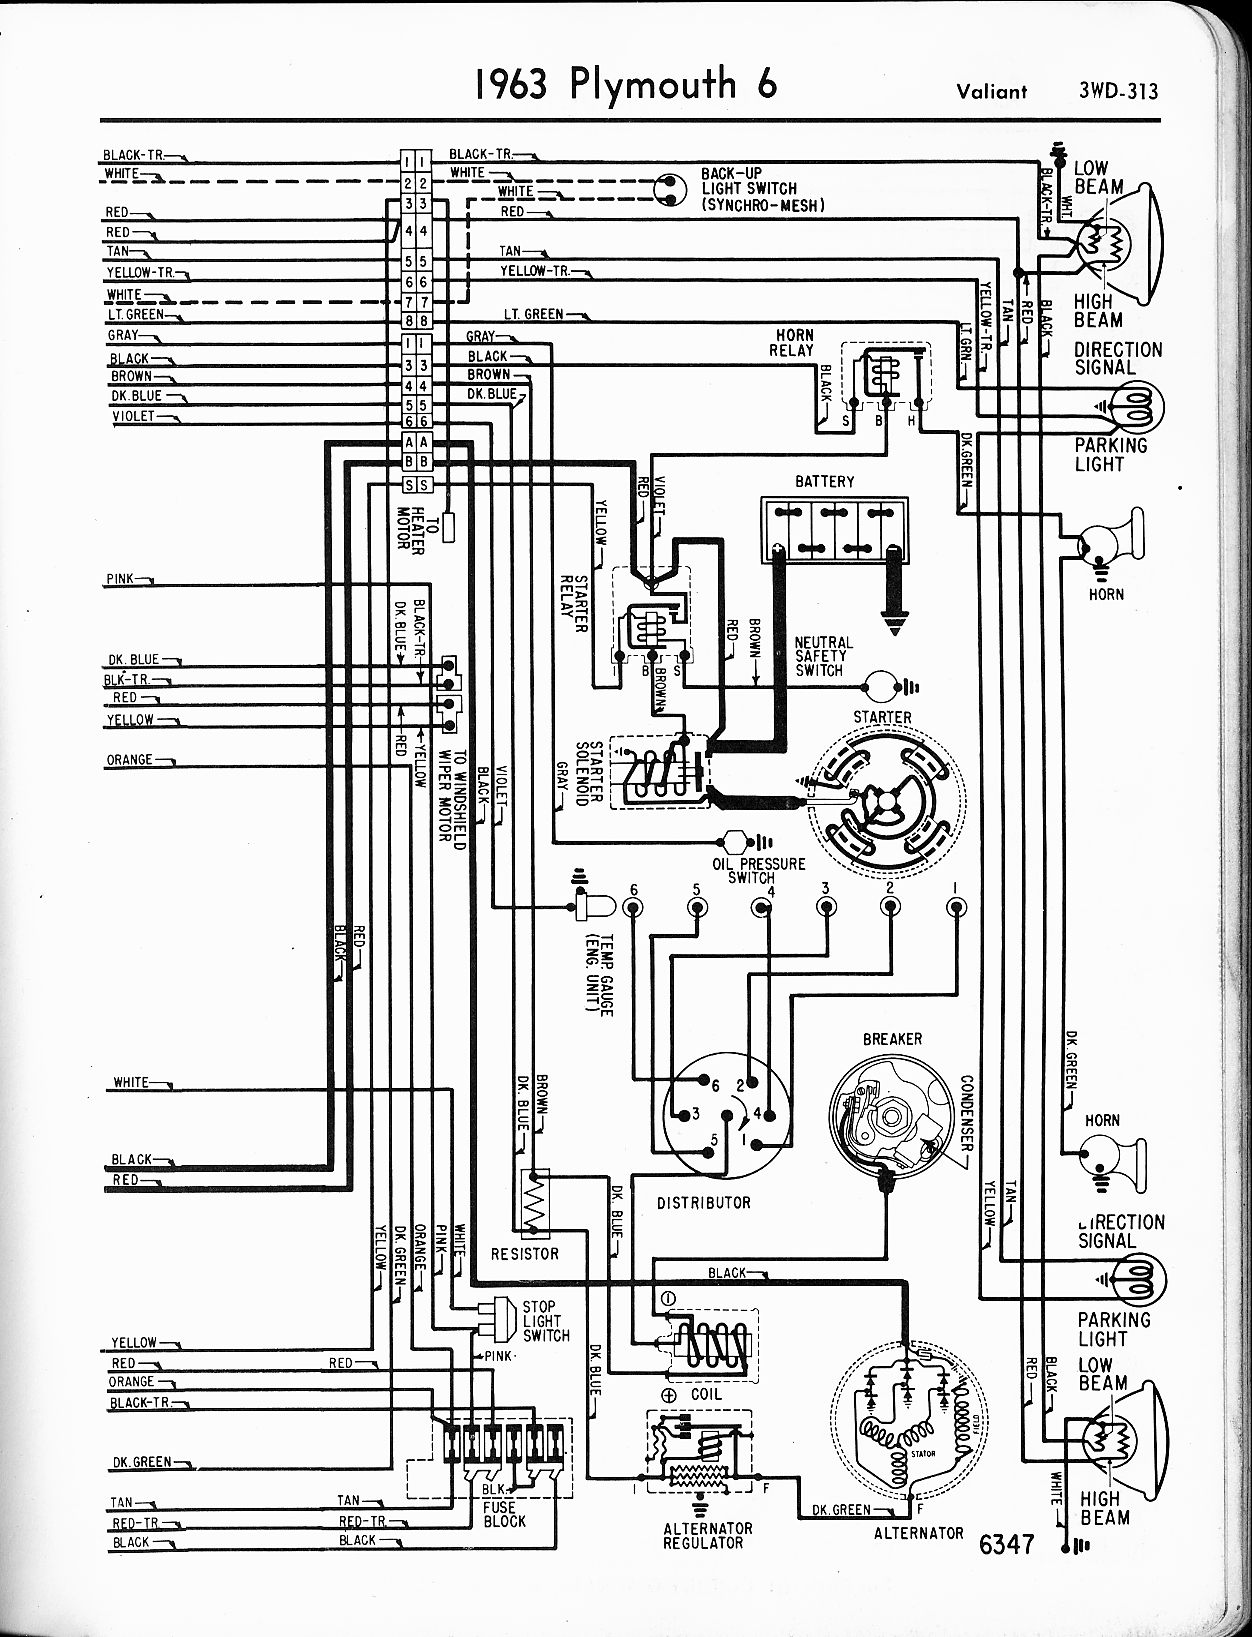 F04F11 67 Dodge Dart Wiring Diagram | Wiring Resources